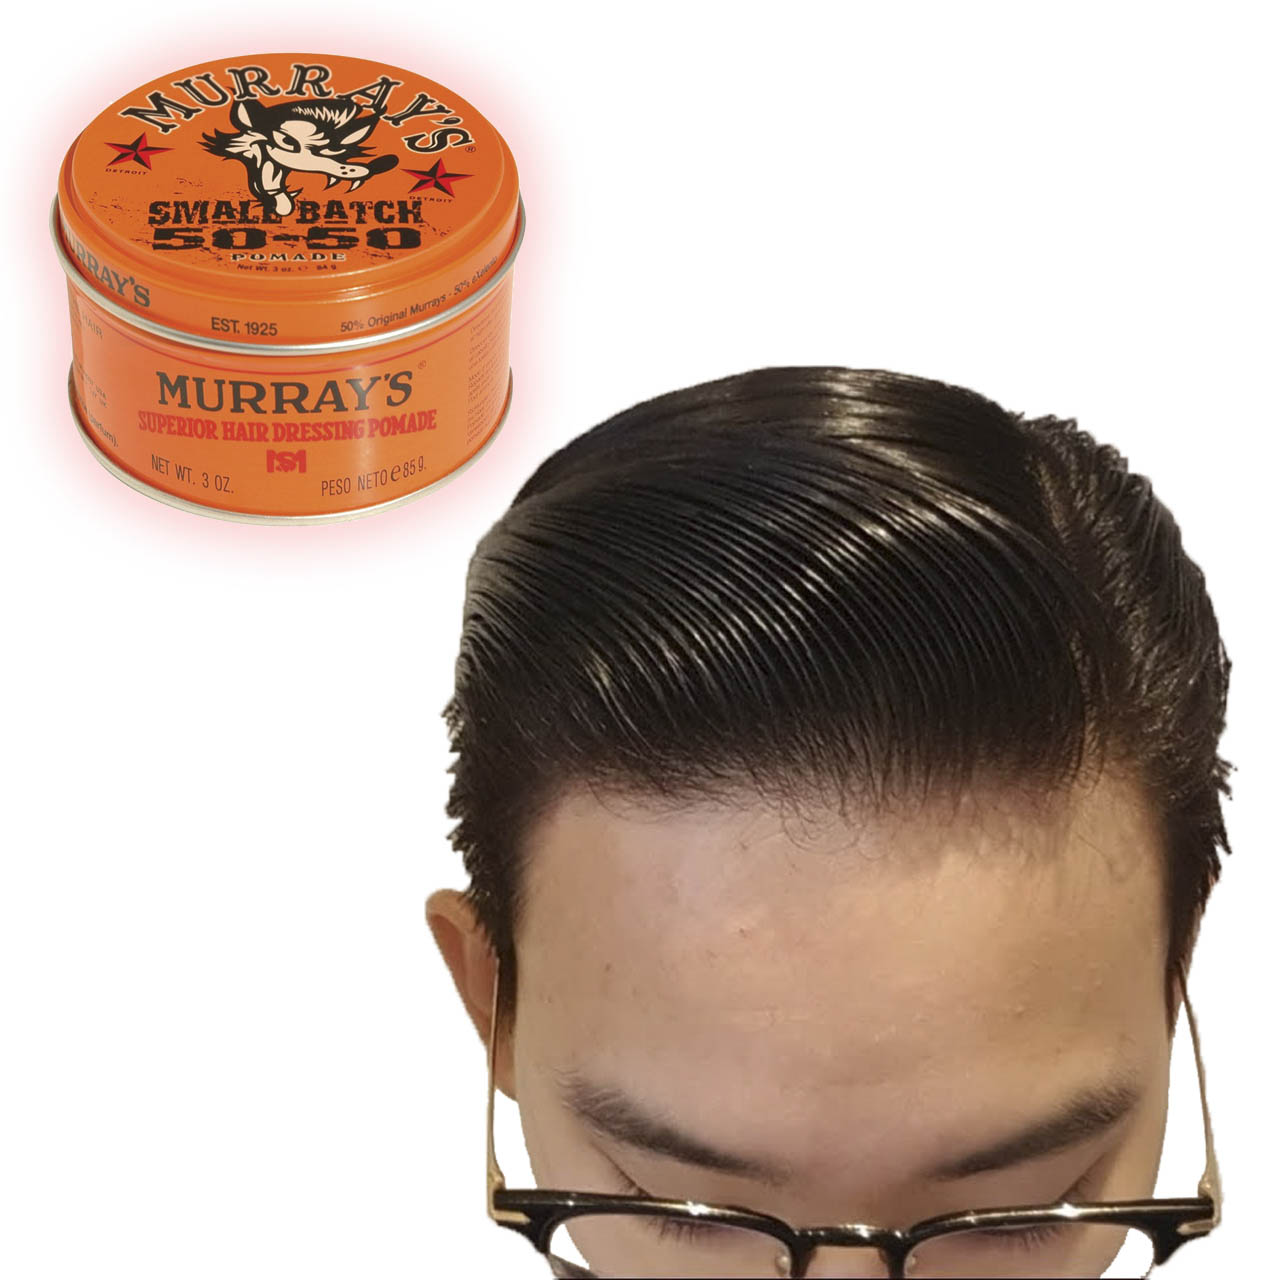 murray_s-small-batch-50-50-pomade-03